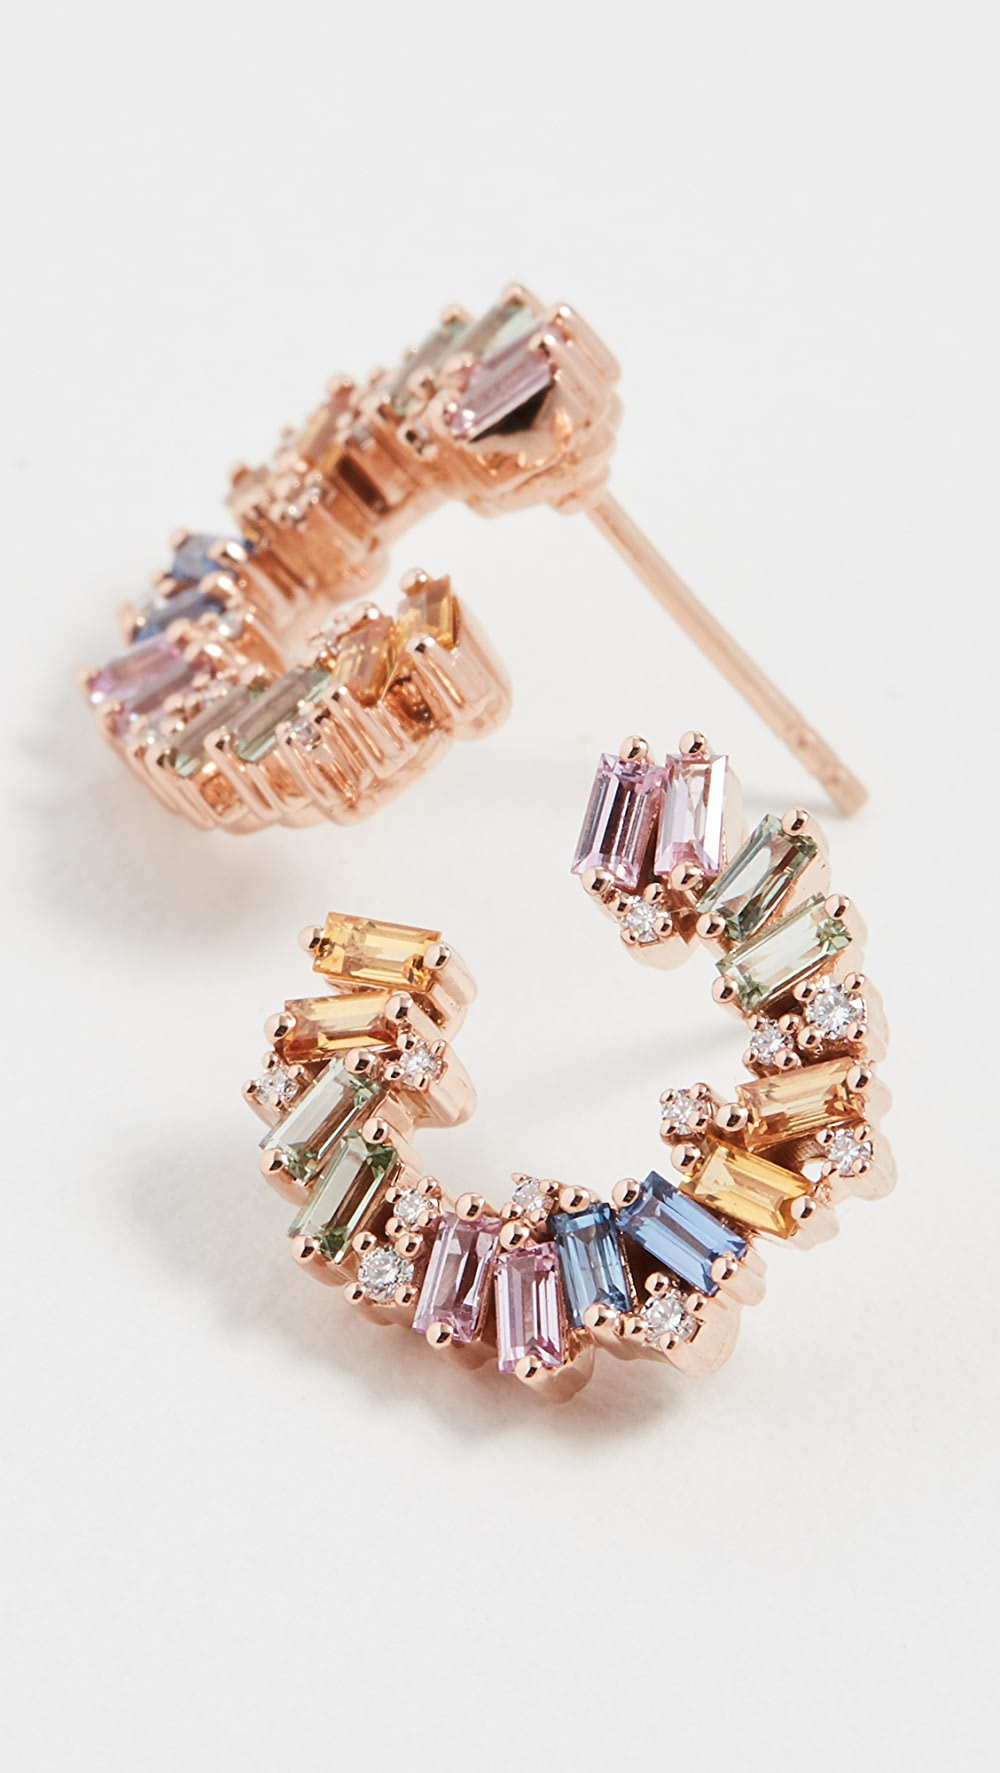 100% Quality Suzanne Kalan - 18k Rose Gold Pastel Rainbow Fireworks Spiral Hoop Earrings Skillful Manufacture